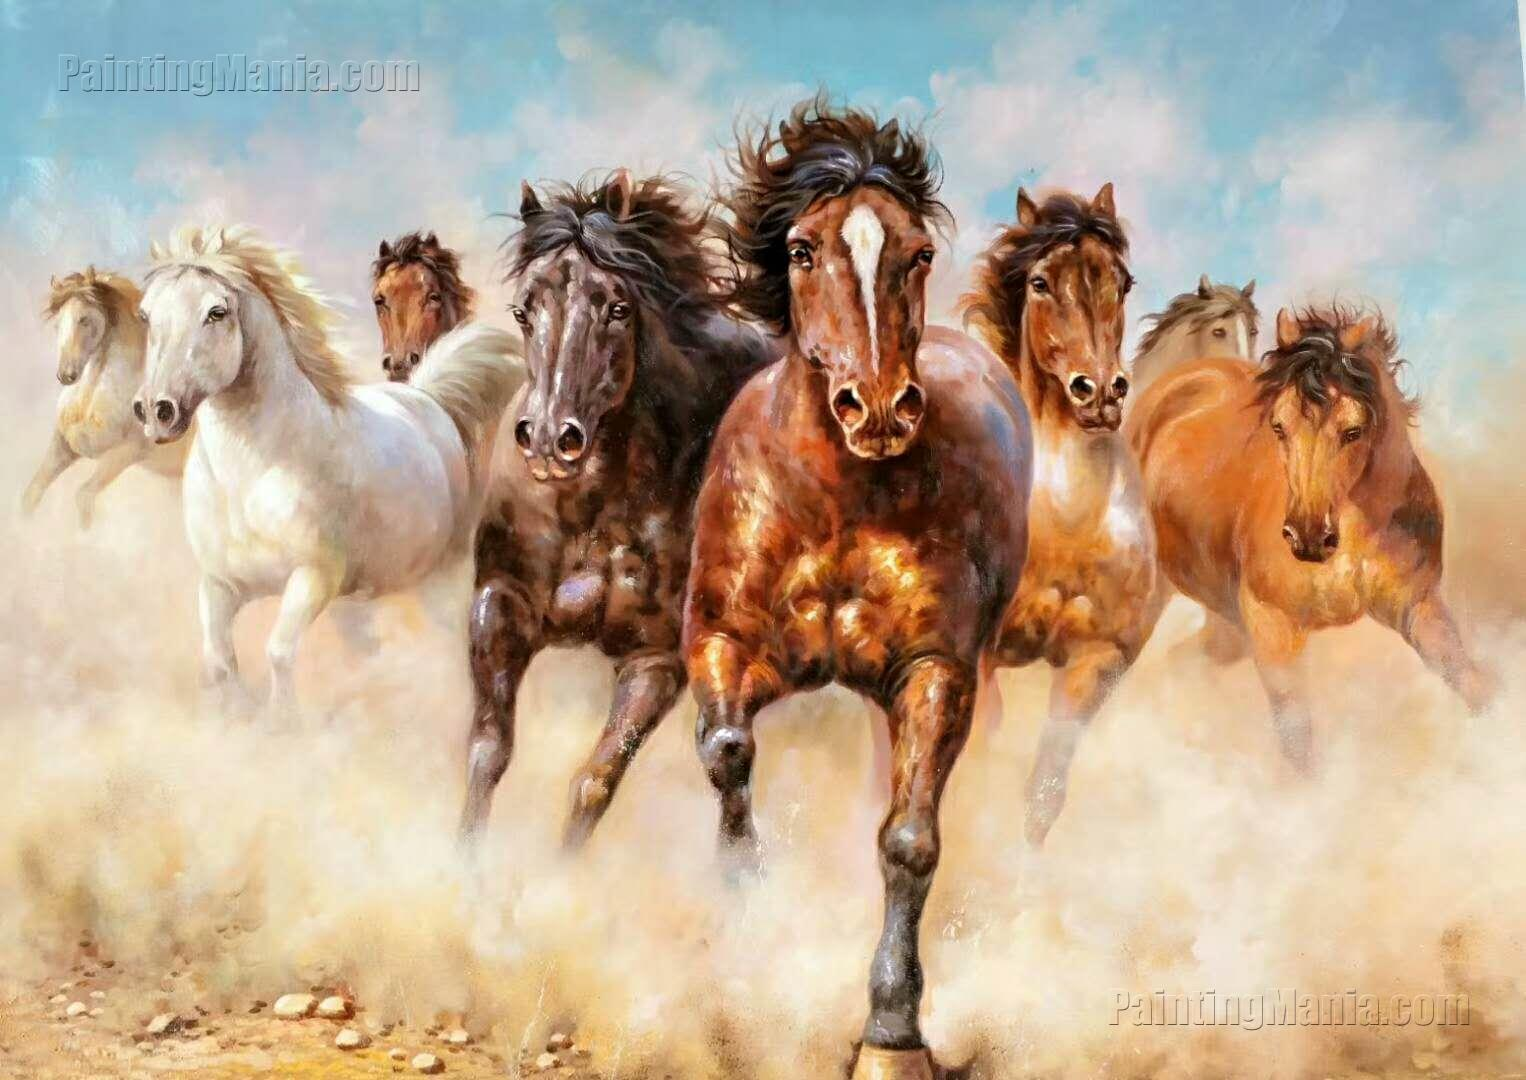 The Eight Galloping Horses (Wild Horses Running Dust)